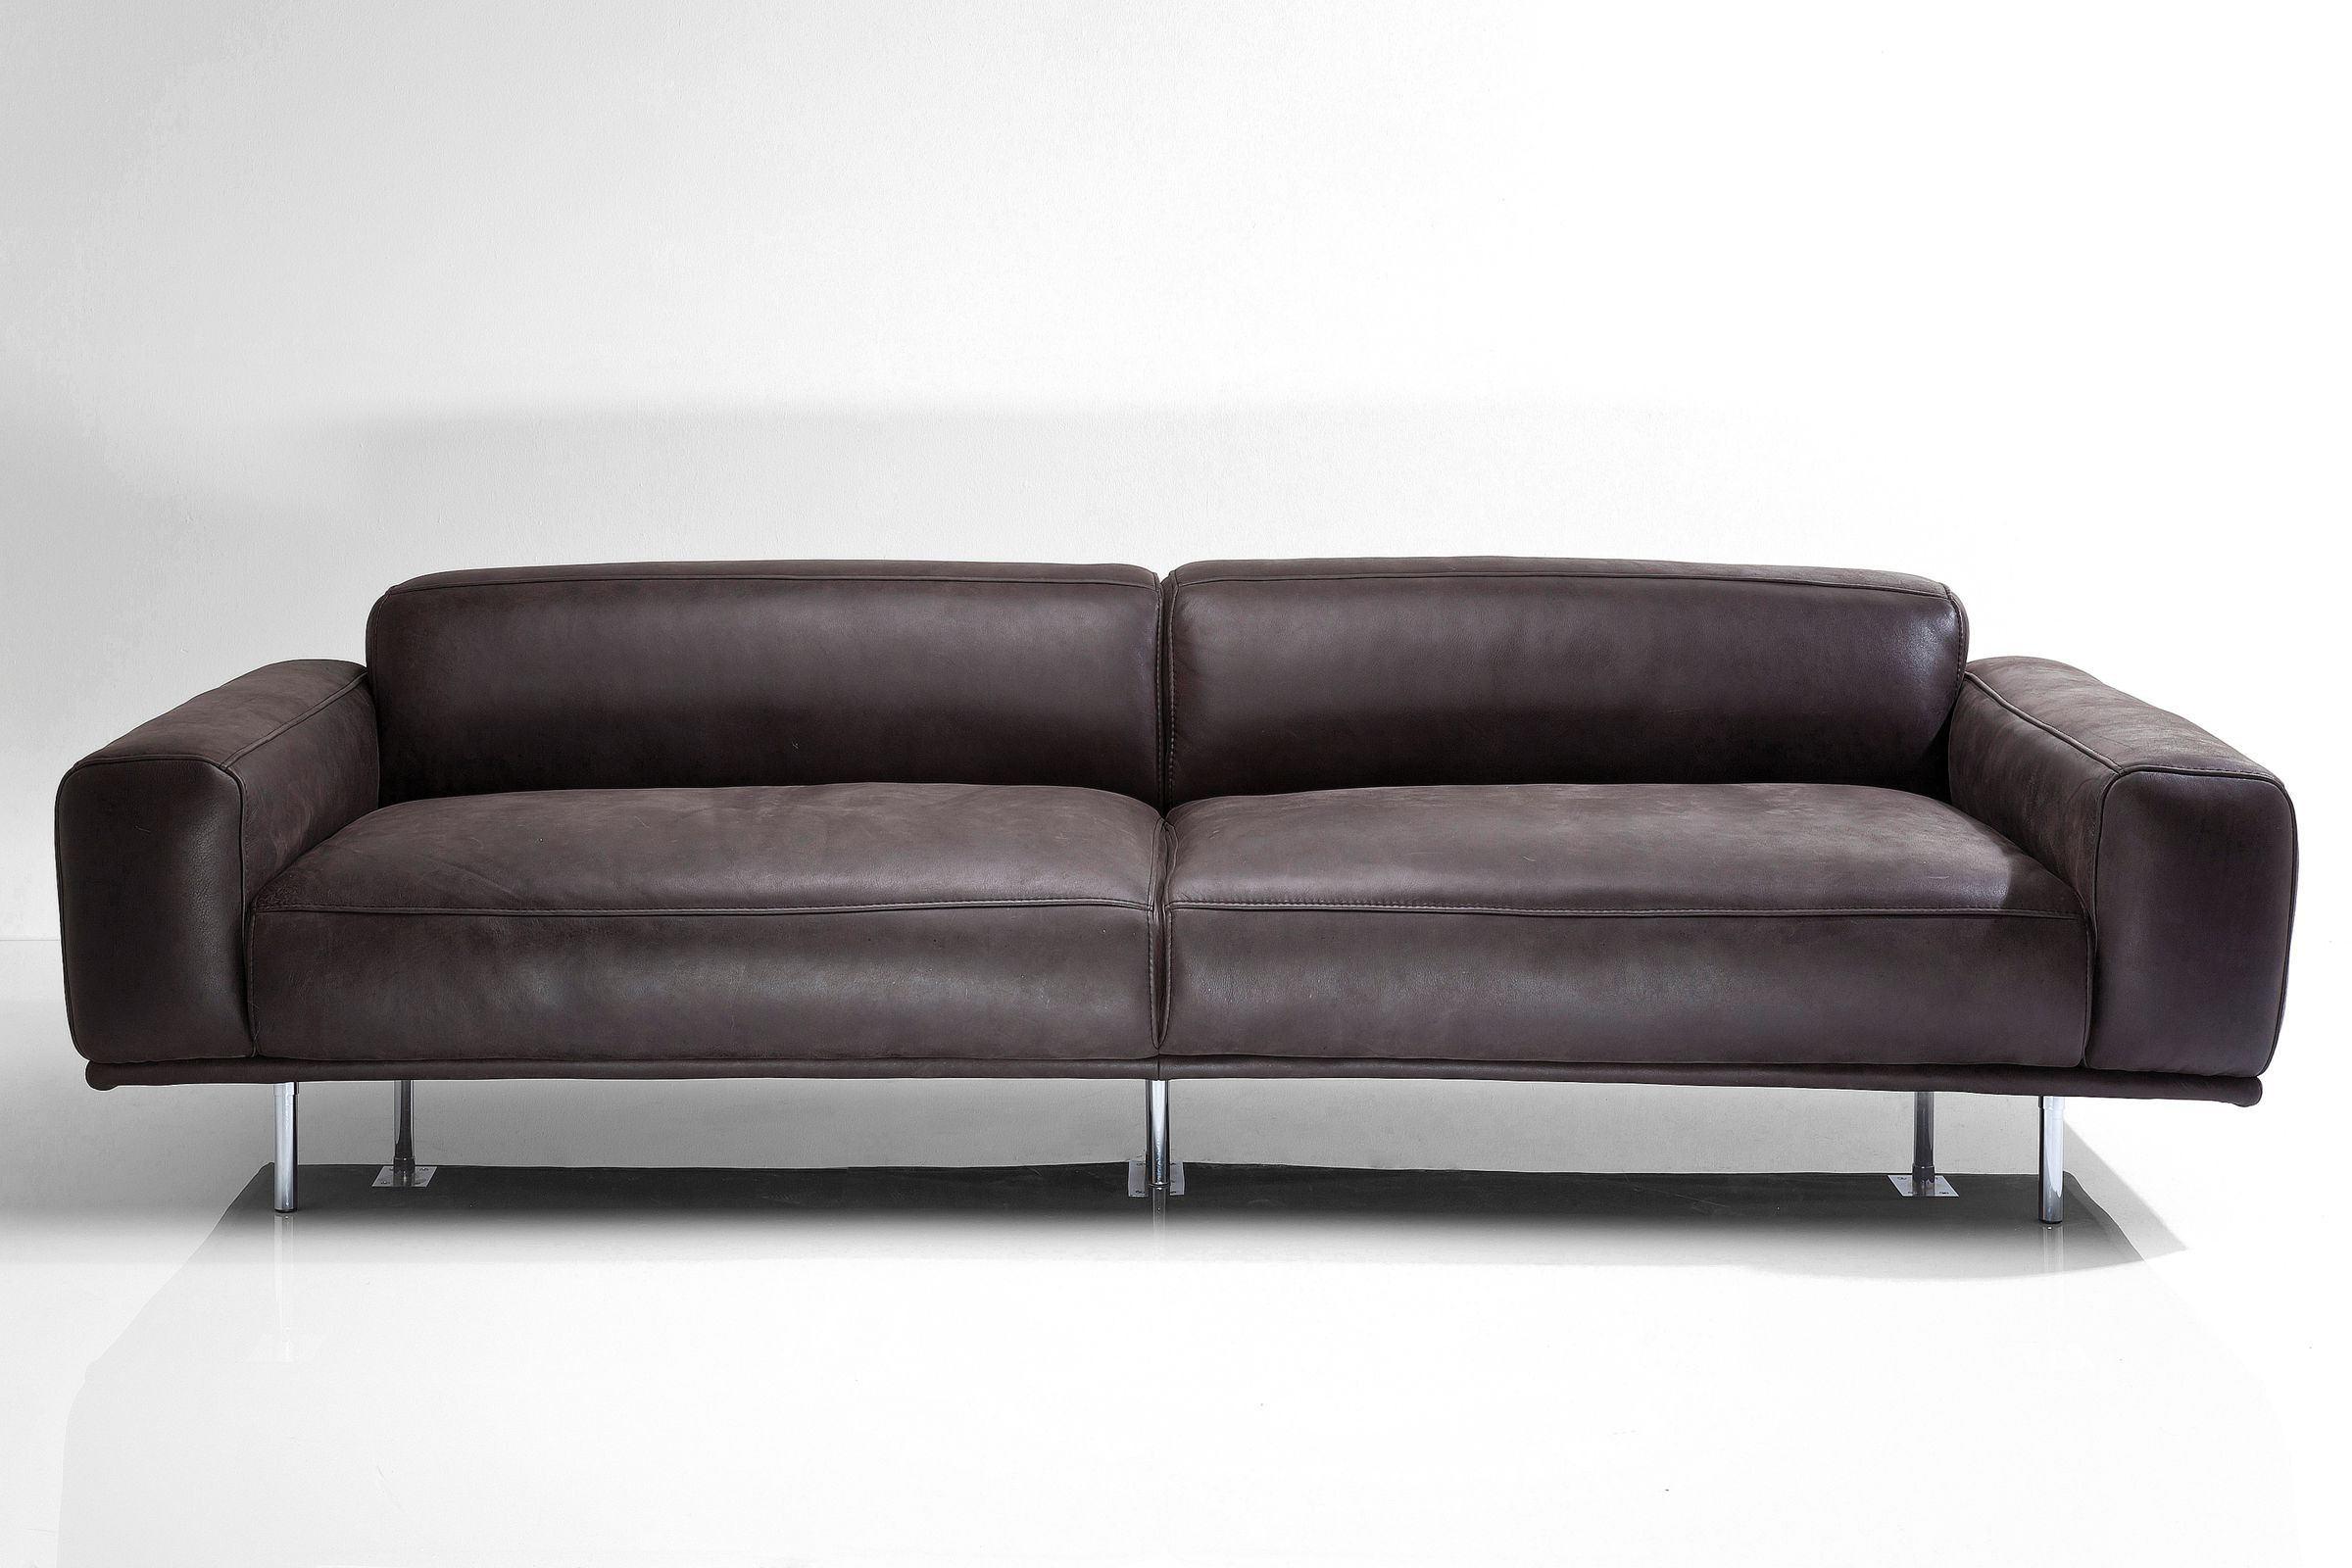 sofa lorenzo 245cm leder anthrazit by kare design studio. Black Bedroom Furniture Sets. Home Design Ideas